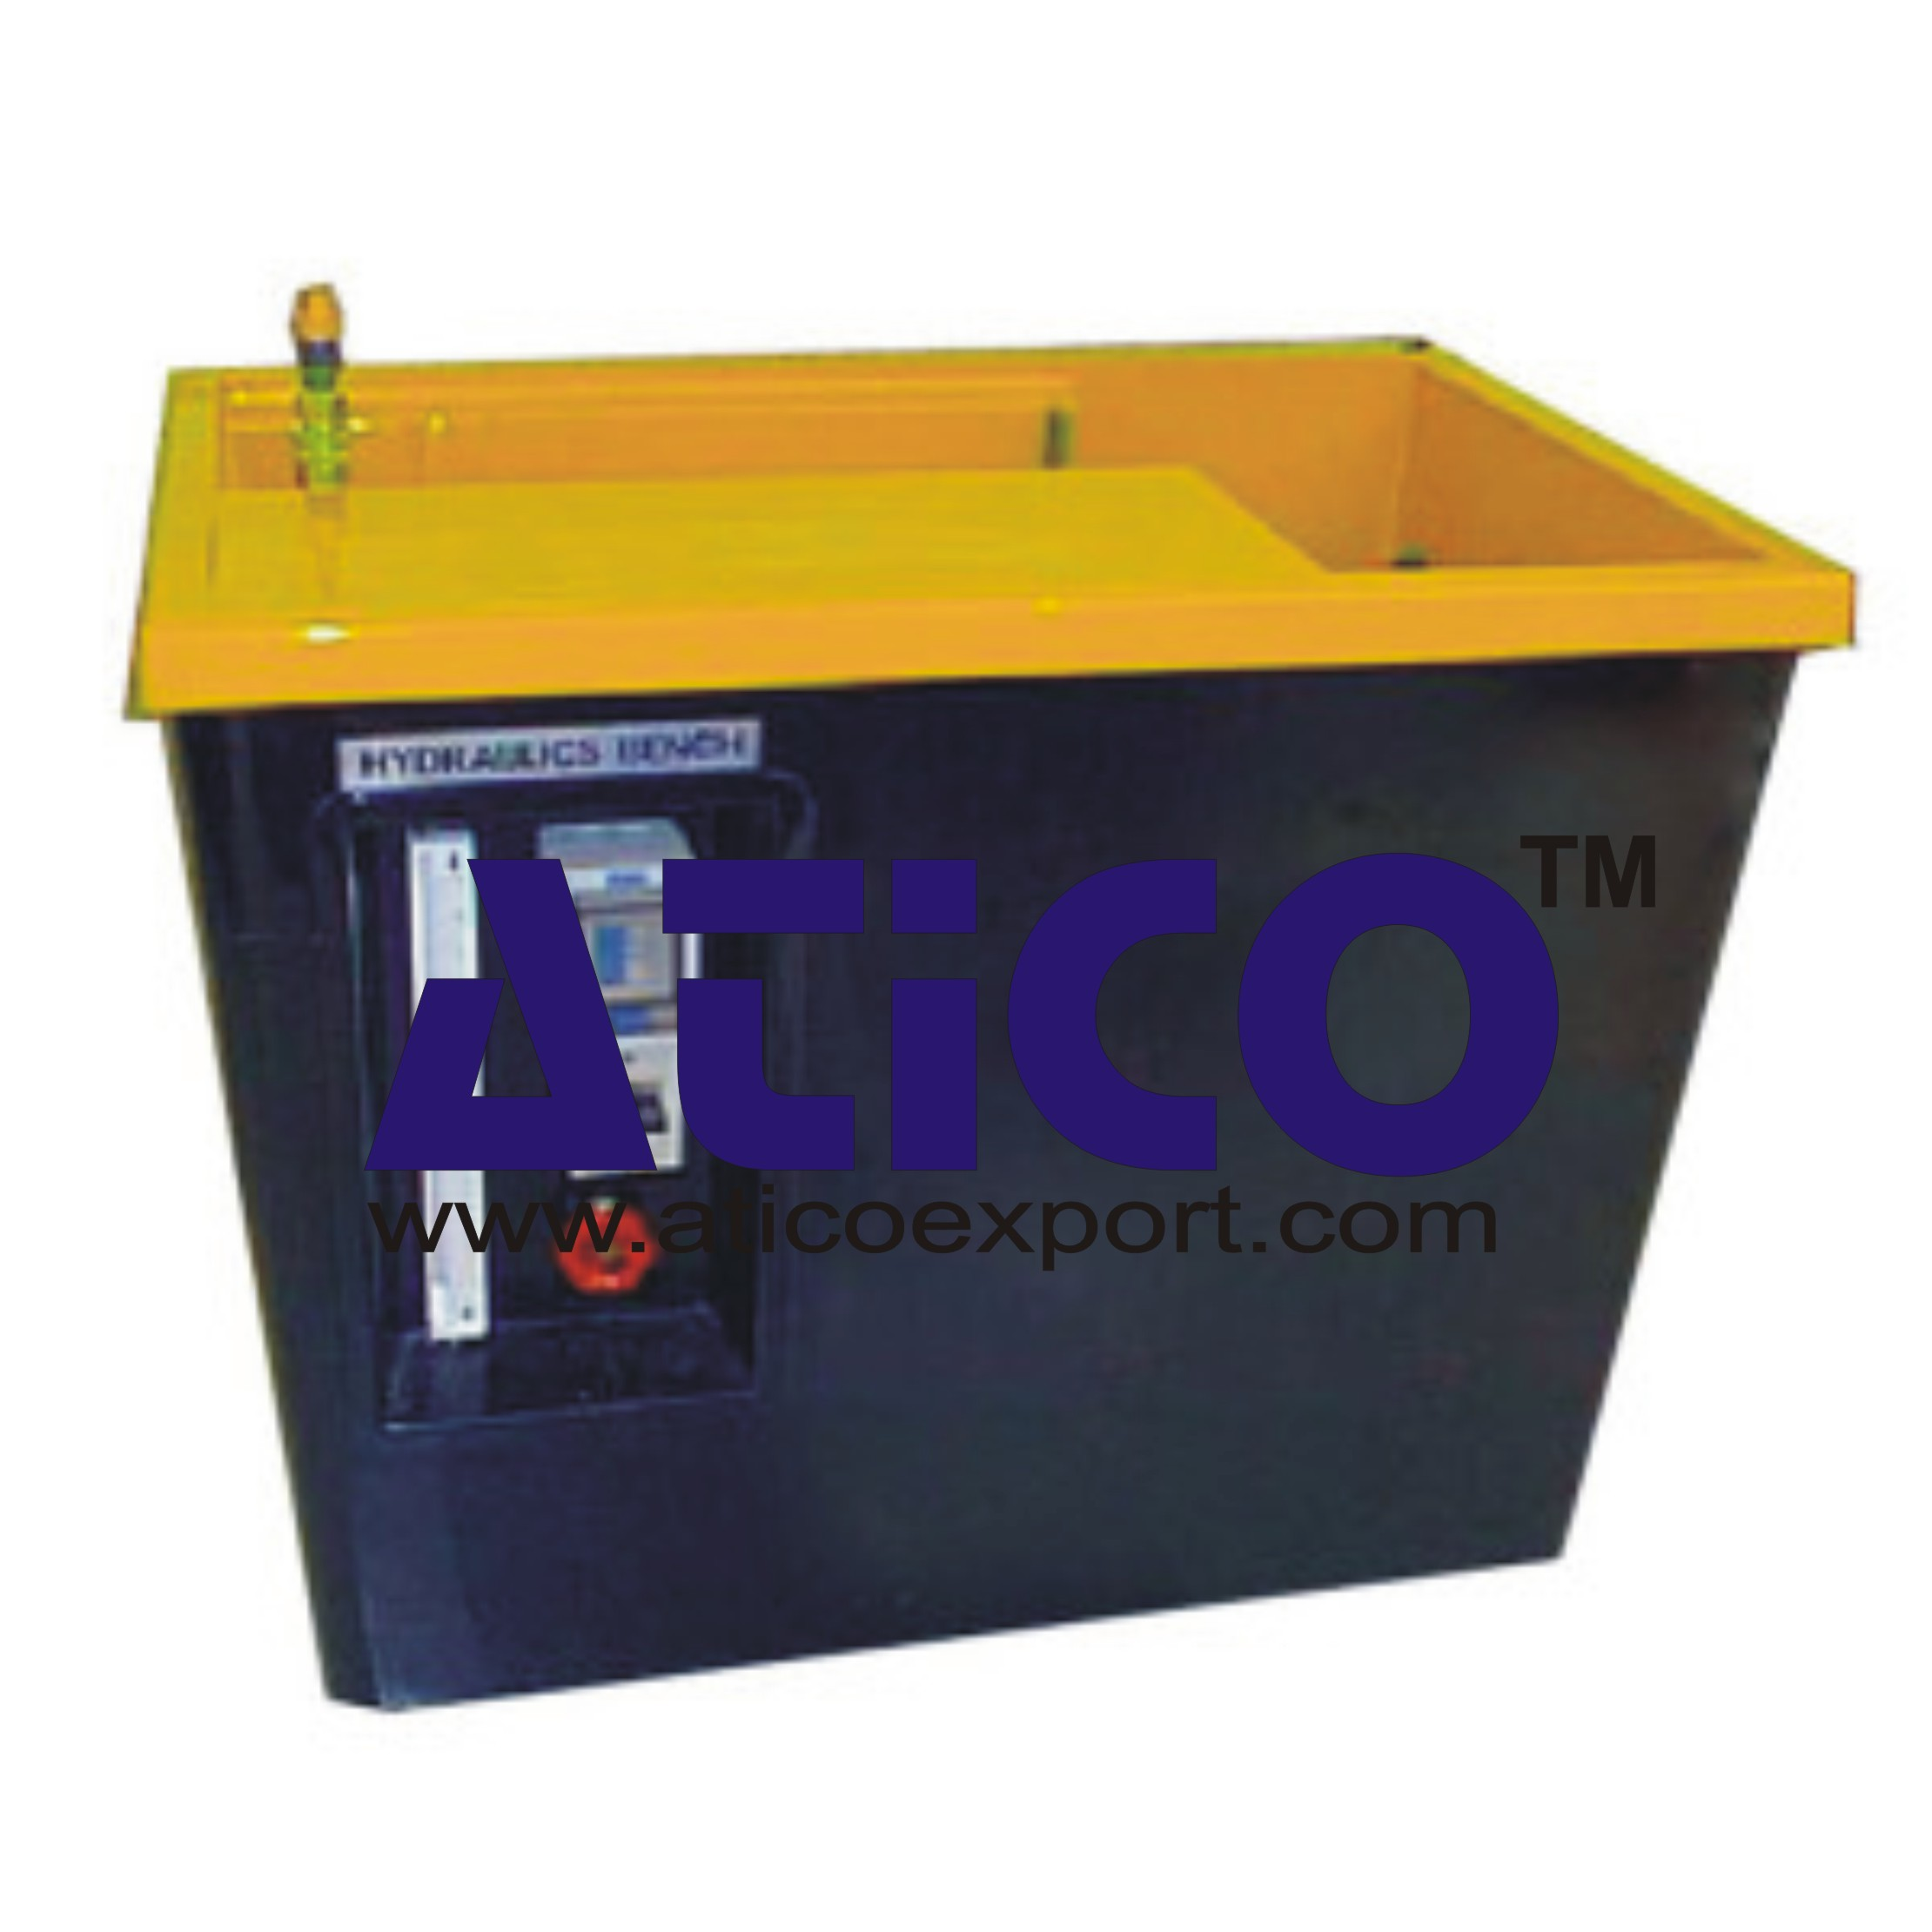 Basic Hydraulic Test Bench Manufacturer Supplier Amp Exporter